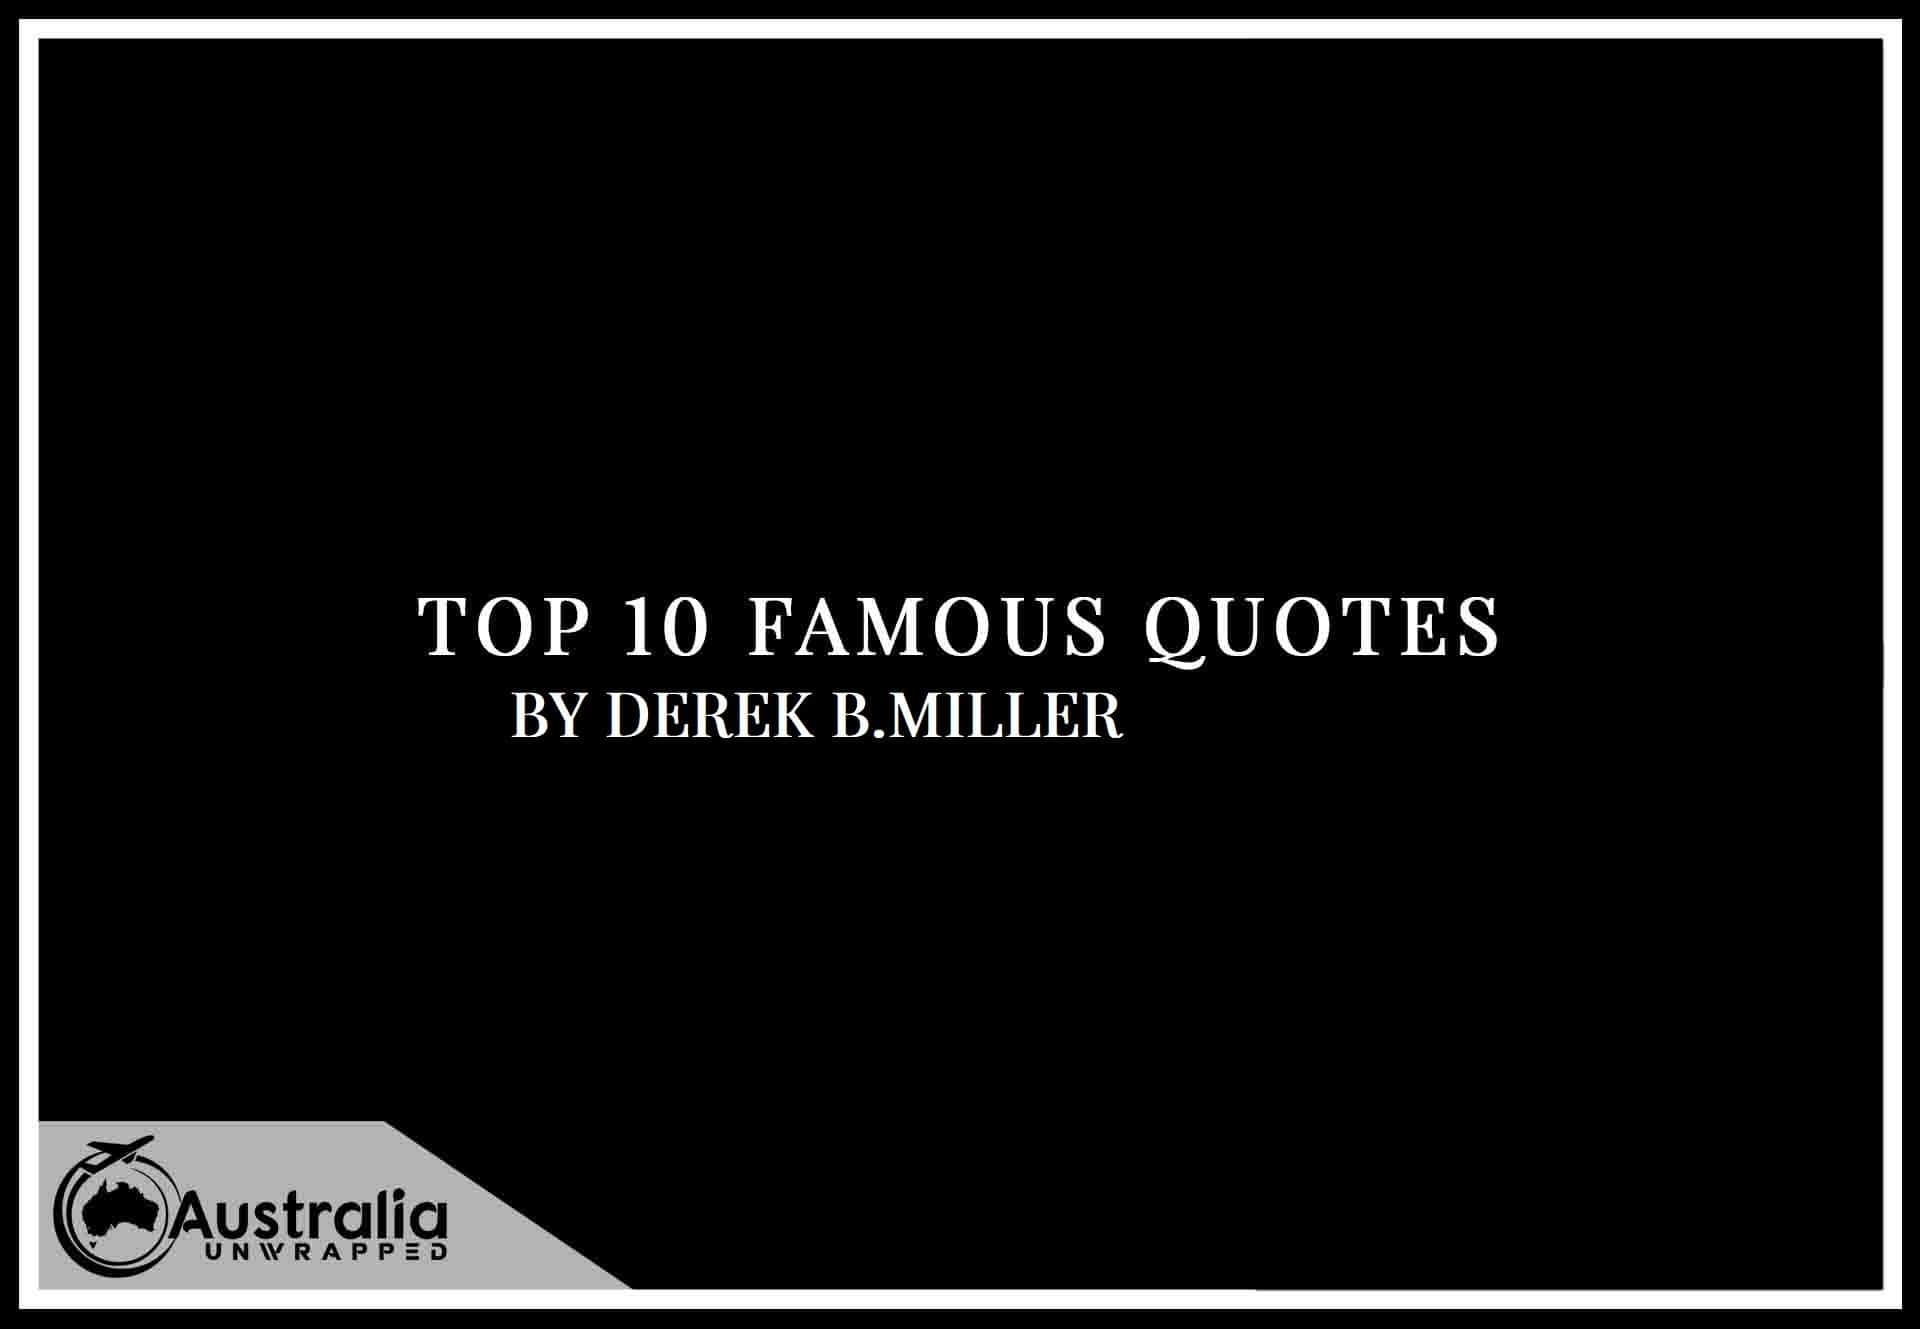 Top 10 Famous Quotes by Author Derek B. Miller